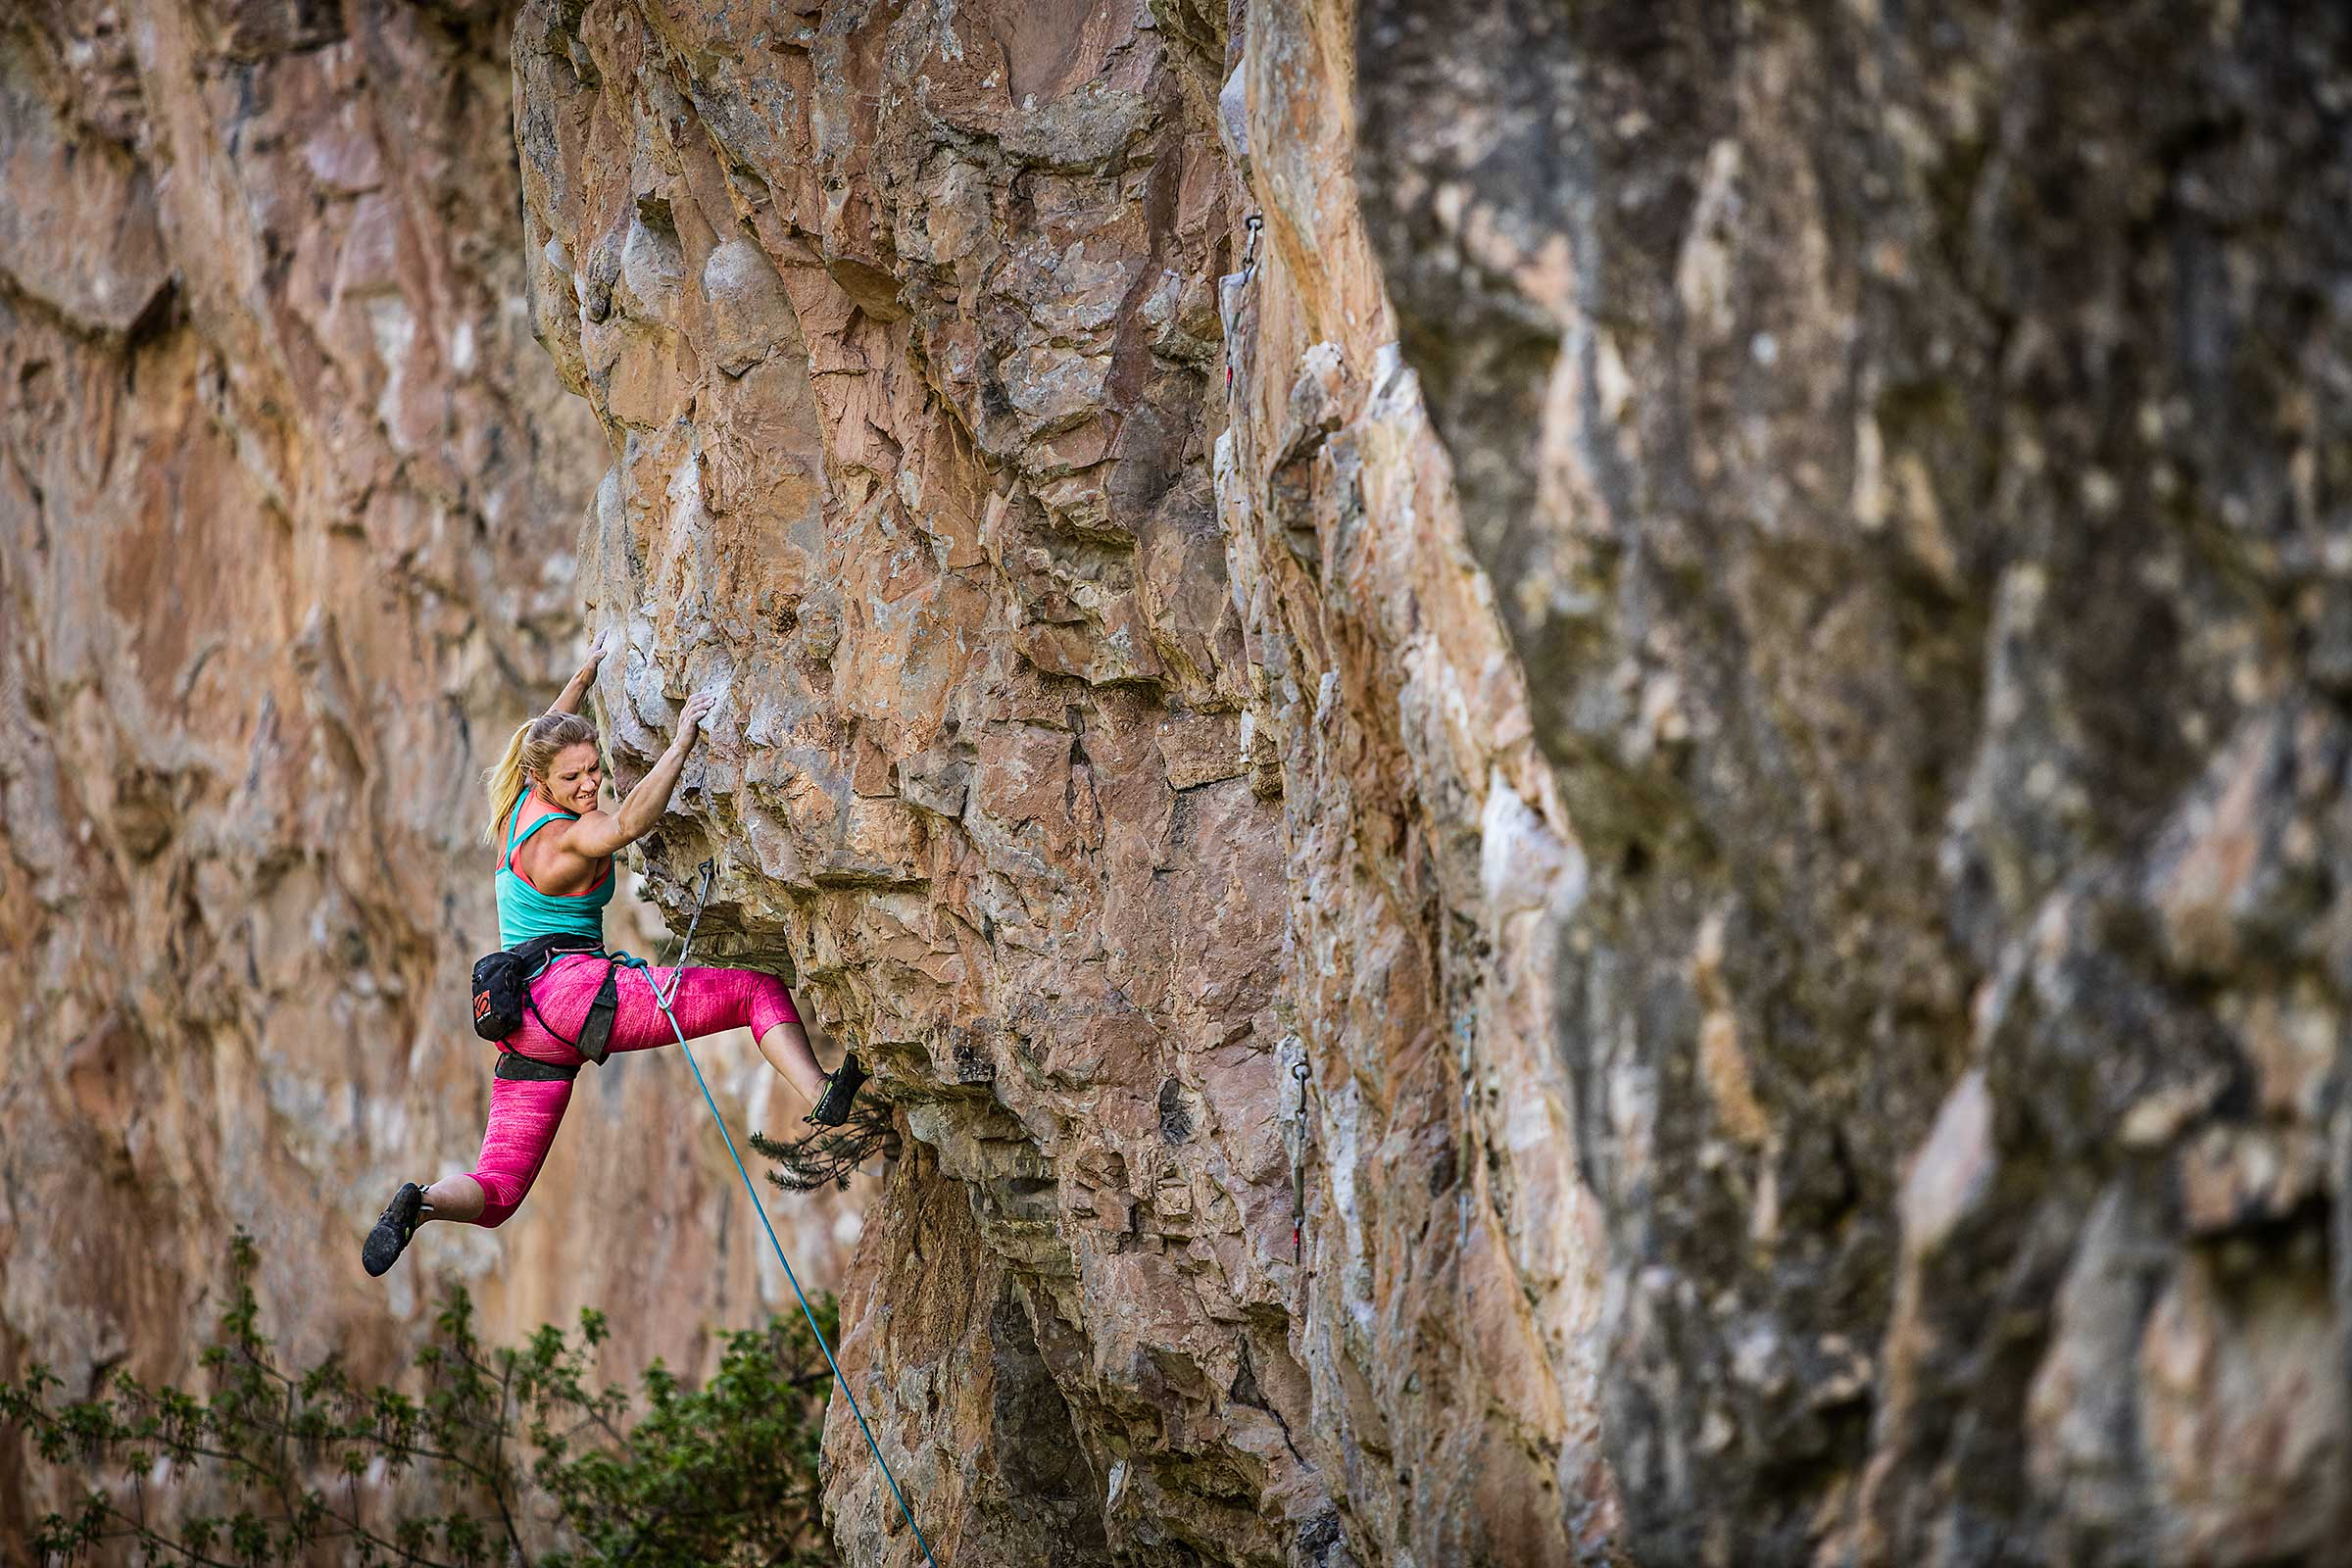 A professional female rock climber swings wildly and struggles to keep from falling